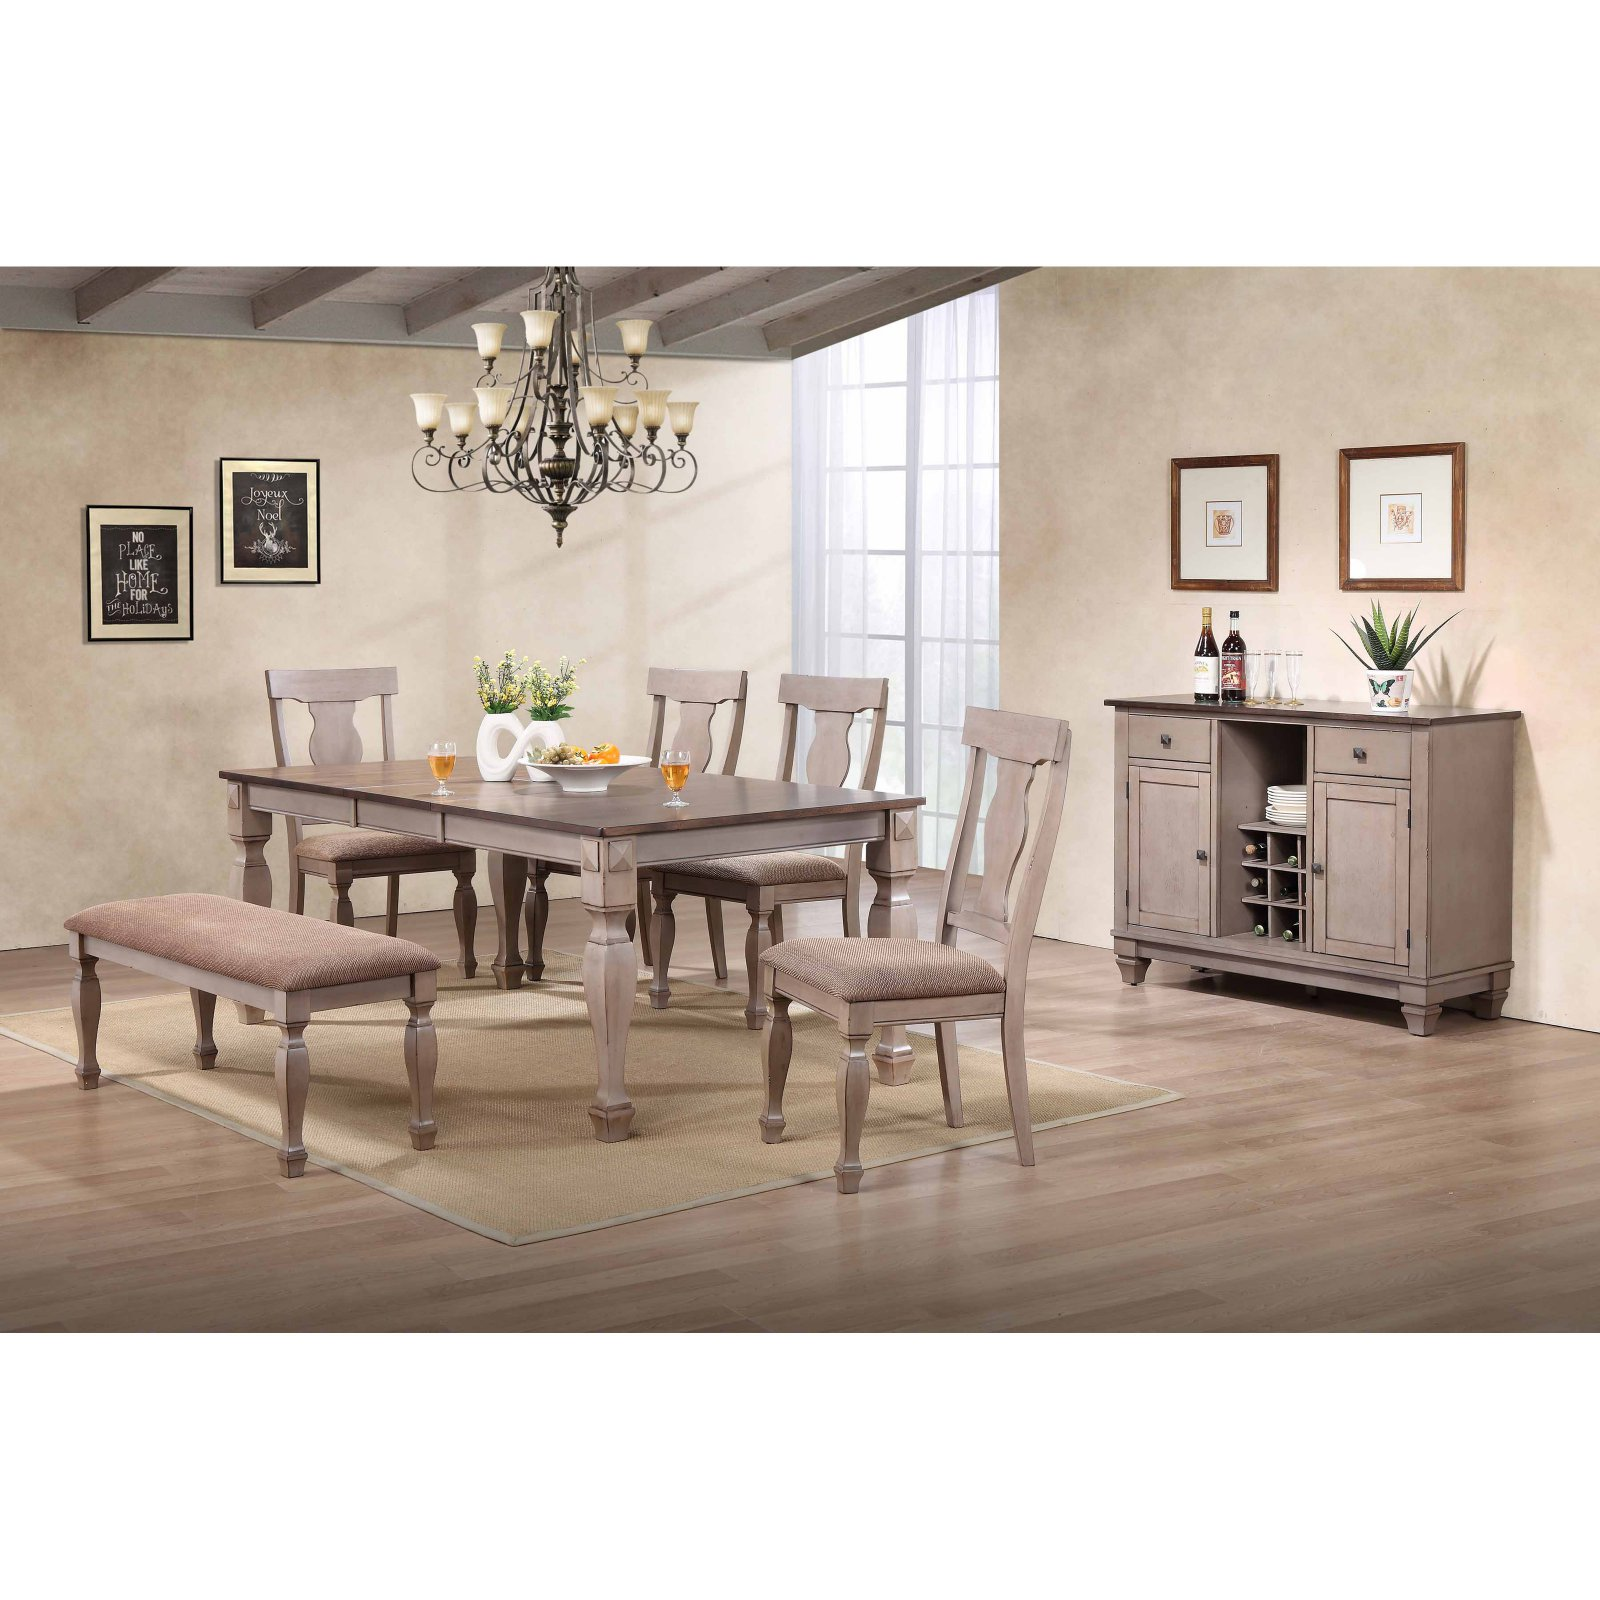 K&B Furniture 2-Tone Brown Wood Dining Table with Leaf